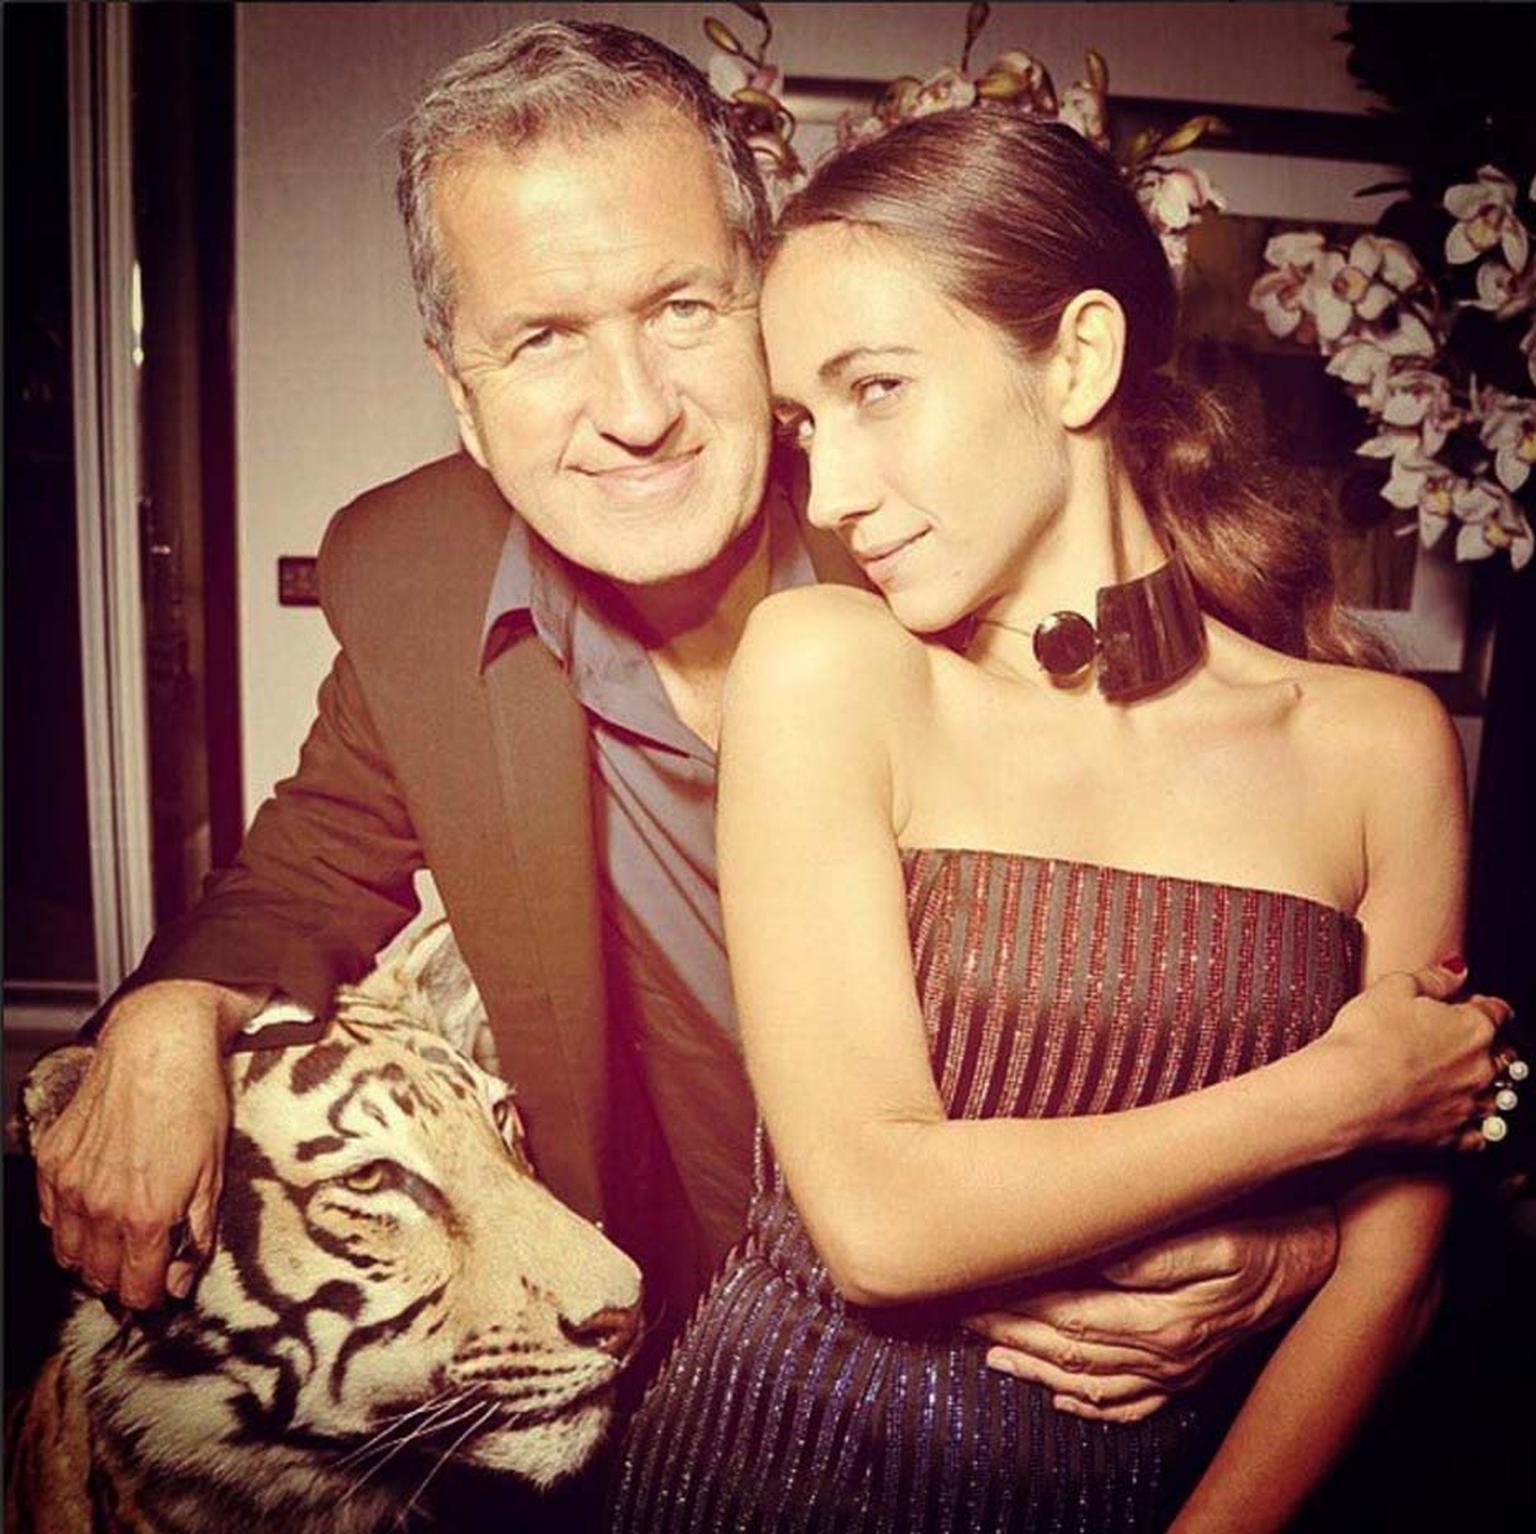 DelfinaDelettrez_Instagram_Delfina Delettrez with MarioTestino at Fashion spirit.jpg